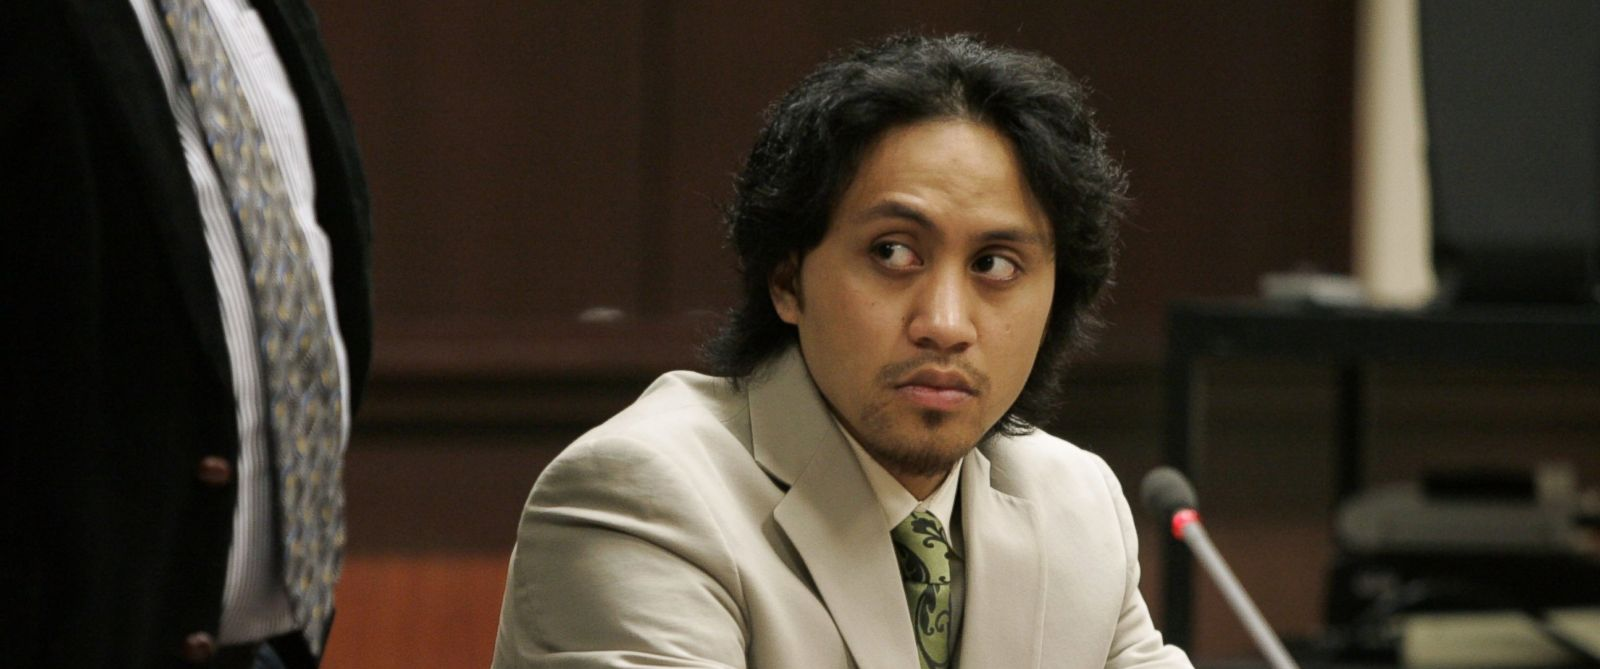 PHOTO: Vili Fualaau appears in court in Seattle, April 3, 2006, for a hearing to determine if he is to stand trial on a drunken driving charge.